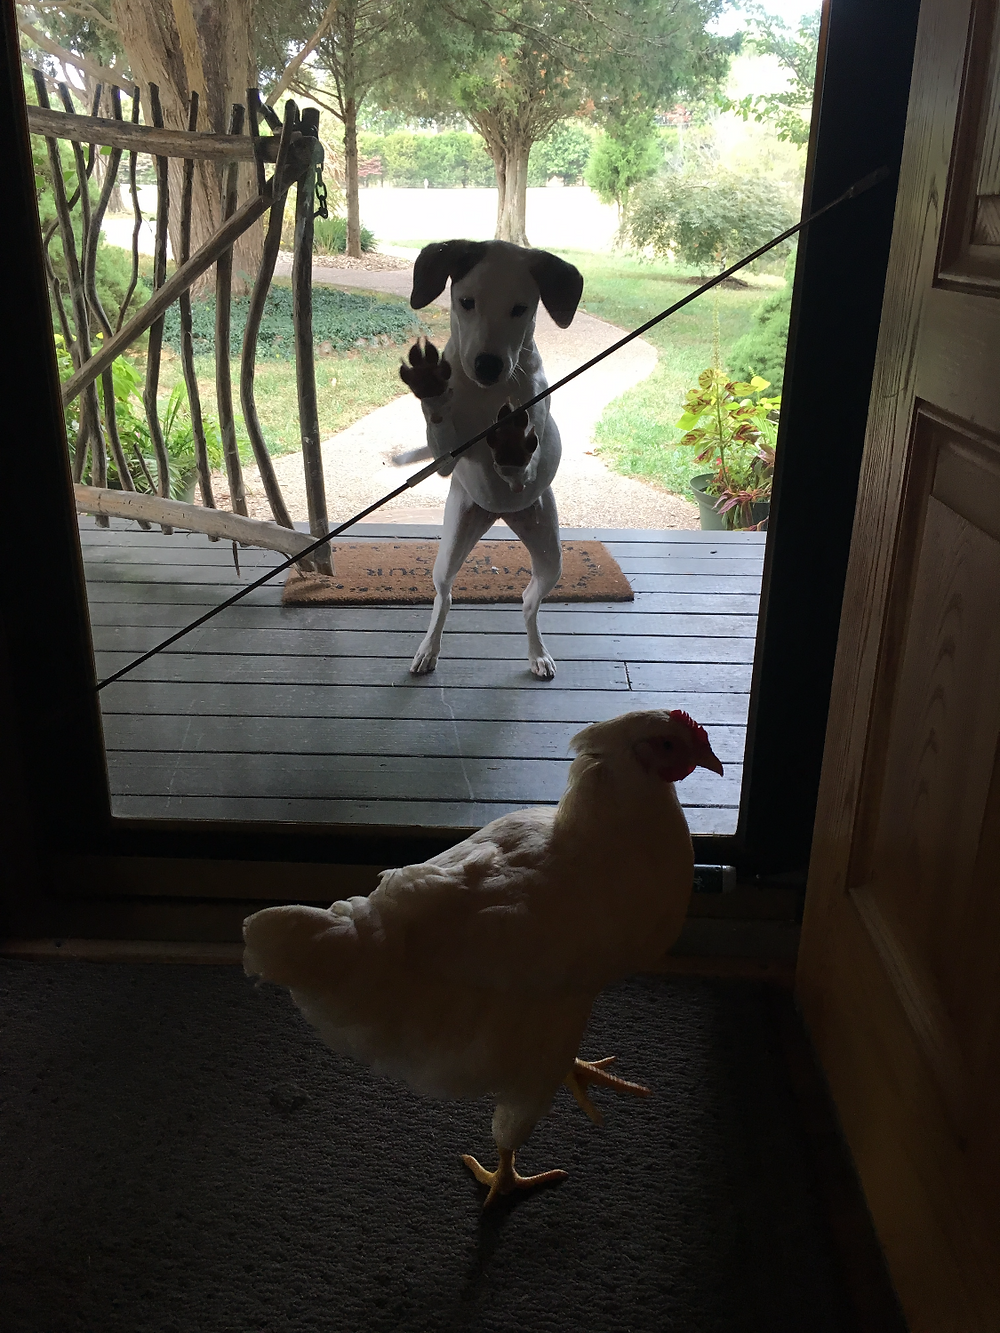 Our pup Maggie in a state of  confusion why she was outside and the chicken was inside.